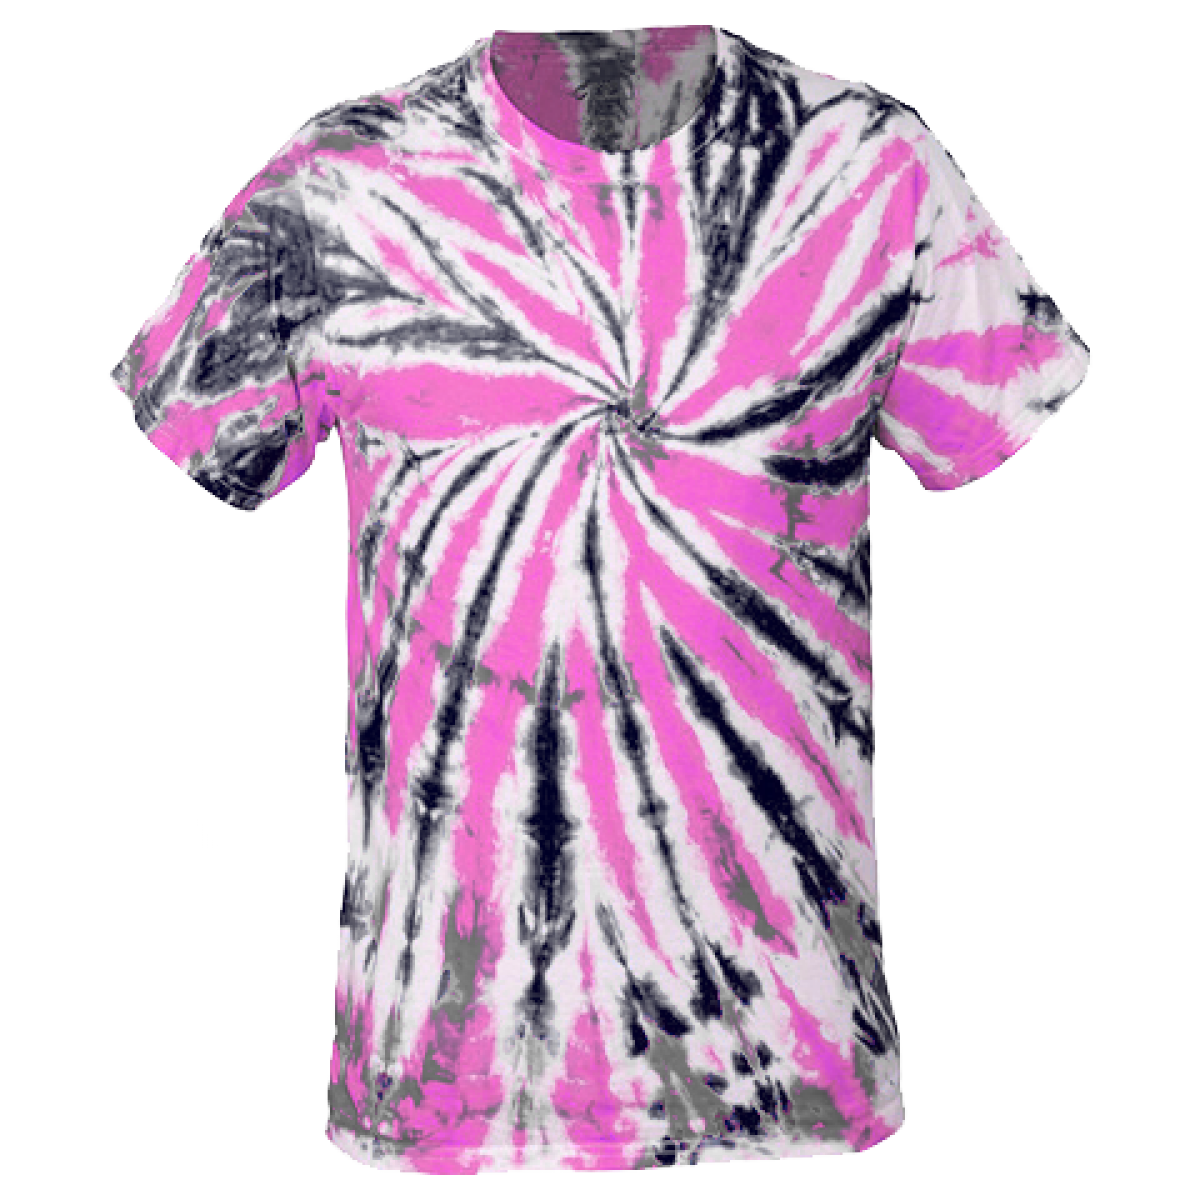 Multi-Color Tie-Dye Tee -Pink/Black-M